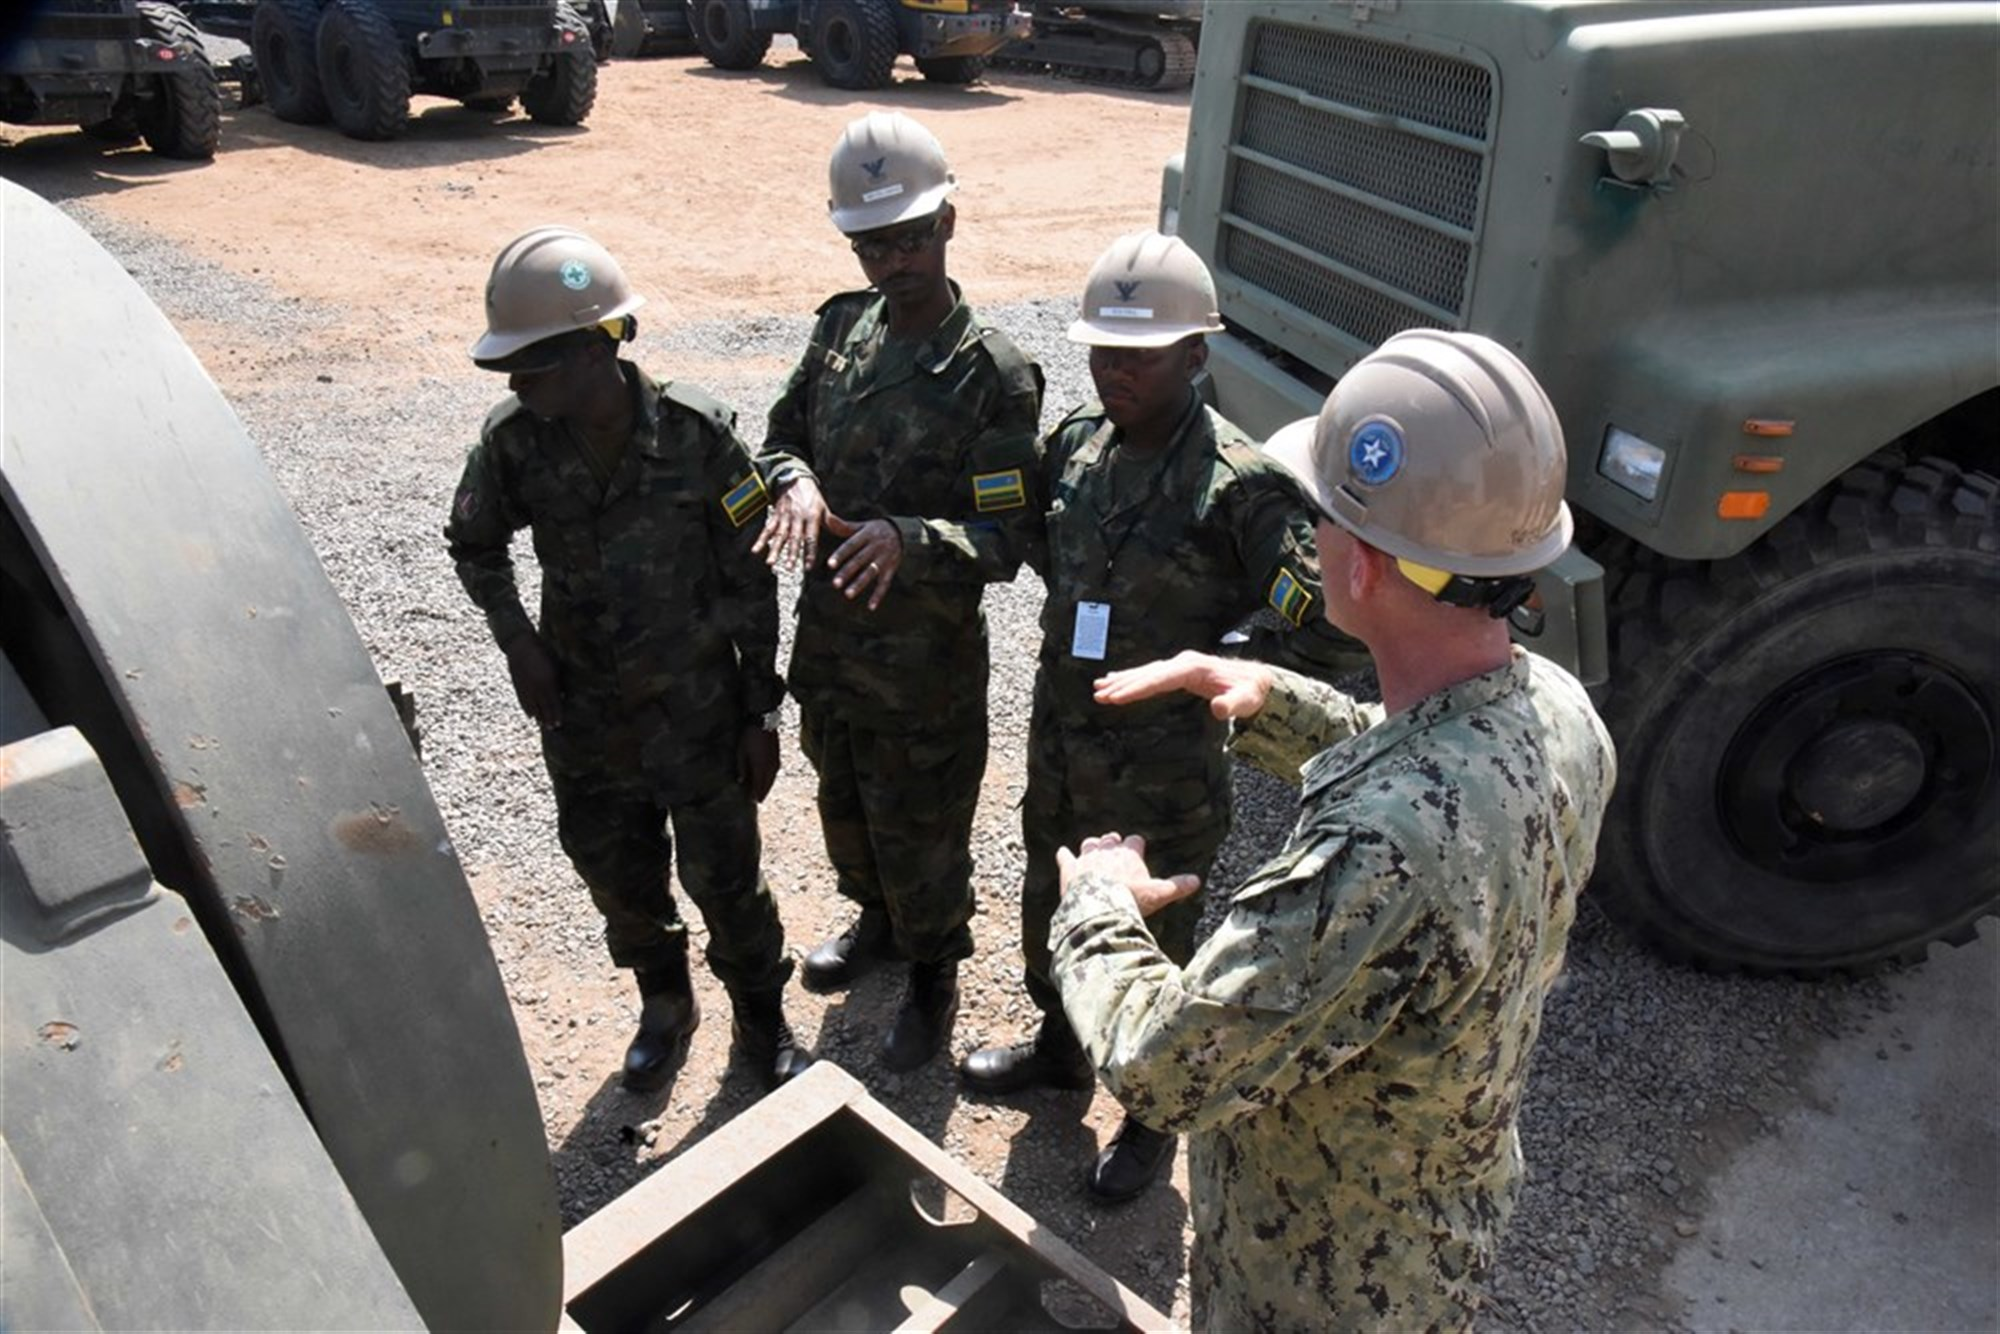 U.S. Navy Equipment Operator 2nd Class Tom Ross, Naval Mobile Construction Battalion 22, explains trailer detachment to Rwanda Defence Force engineers during their tour of Camp Lemonnier, Djibouti, Feb. 24, 2016. RDF members learned more about U.S. expeditionary camps and what equipment is used to build and maintain them. (U.S. Air Force photo by Staff Sgt. Victoria Sneed)